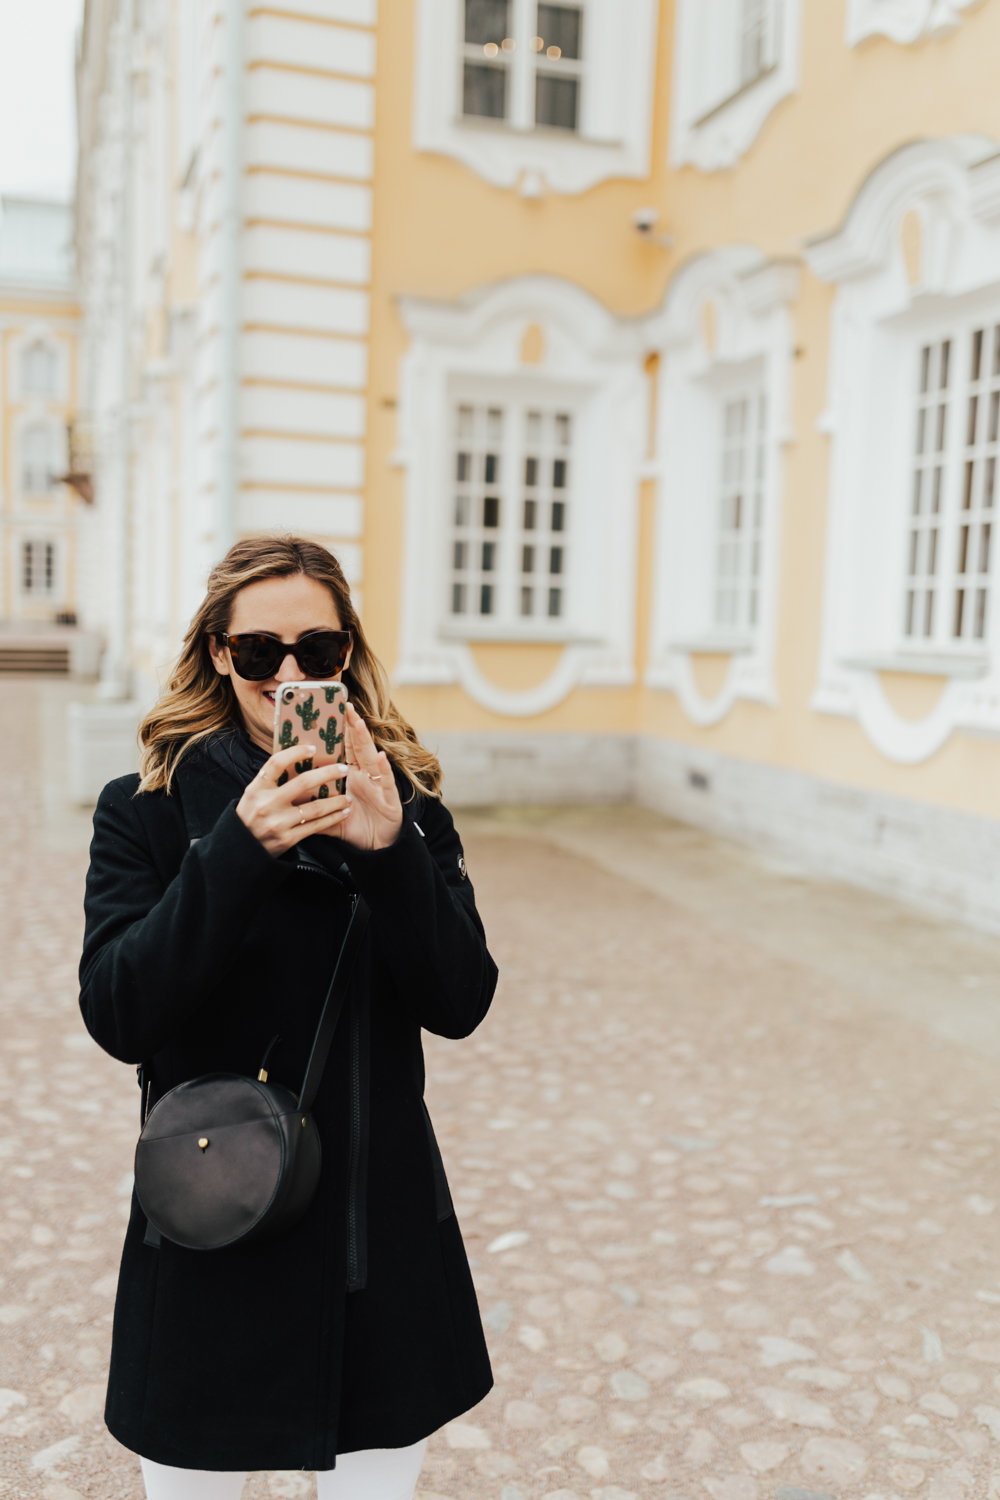 livvyland-blog-olivia-watson-regal-princess-scandinavia-cruise-may-june-itinerary-what-to-wear-pack-ports-russia-saint-petersburg-city-guide-travel-diary-june-outfit-madewell-circle-bag